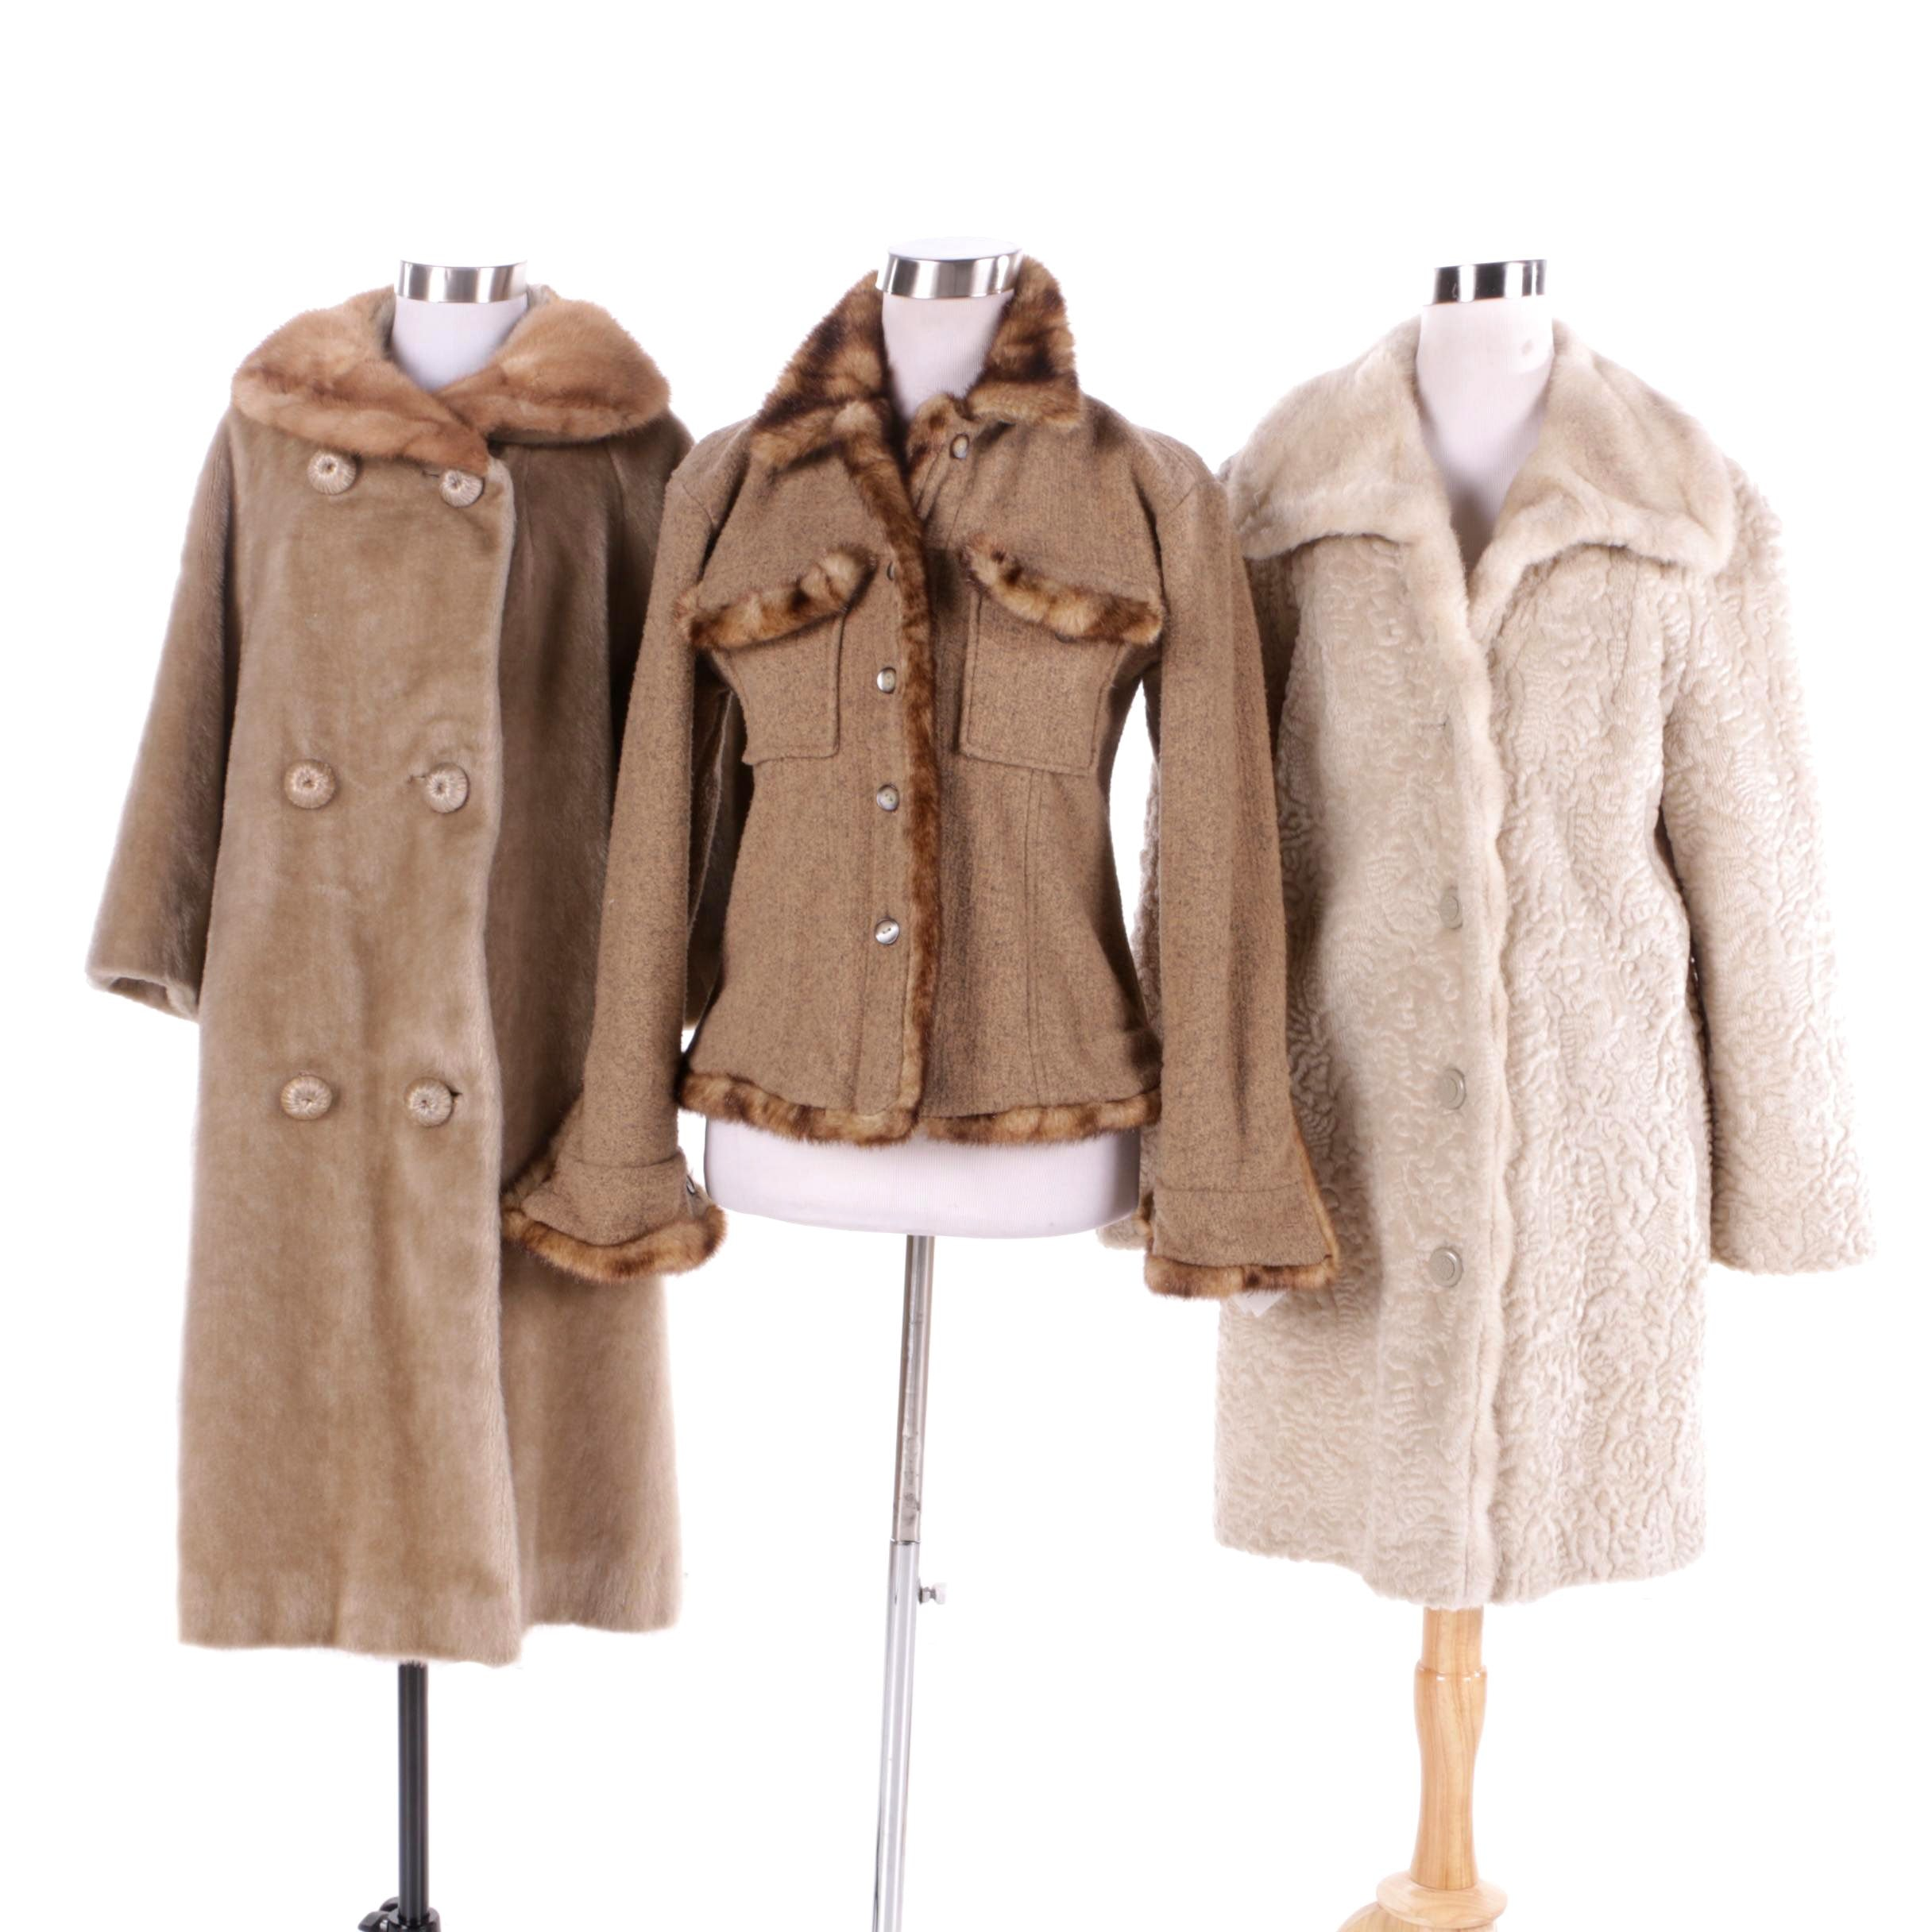 Women's Winter Coats with Mink Fur and Faux Fur Including Peck & Peck